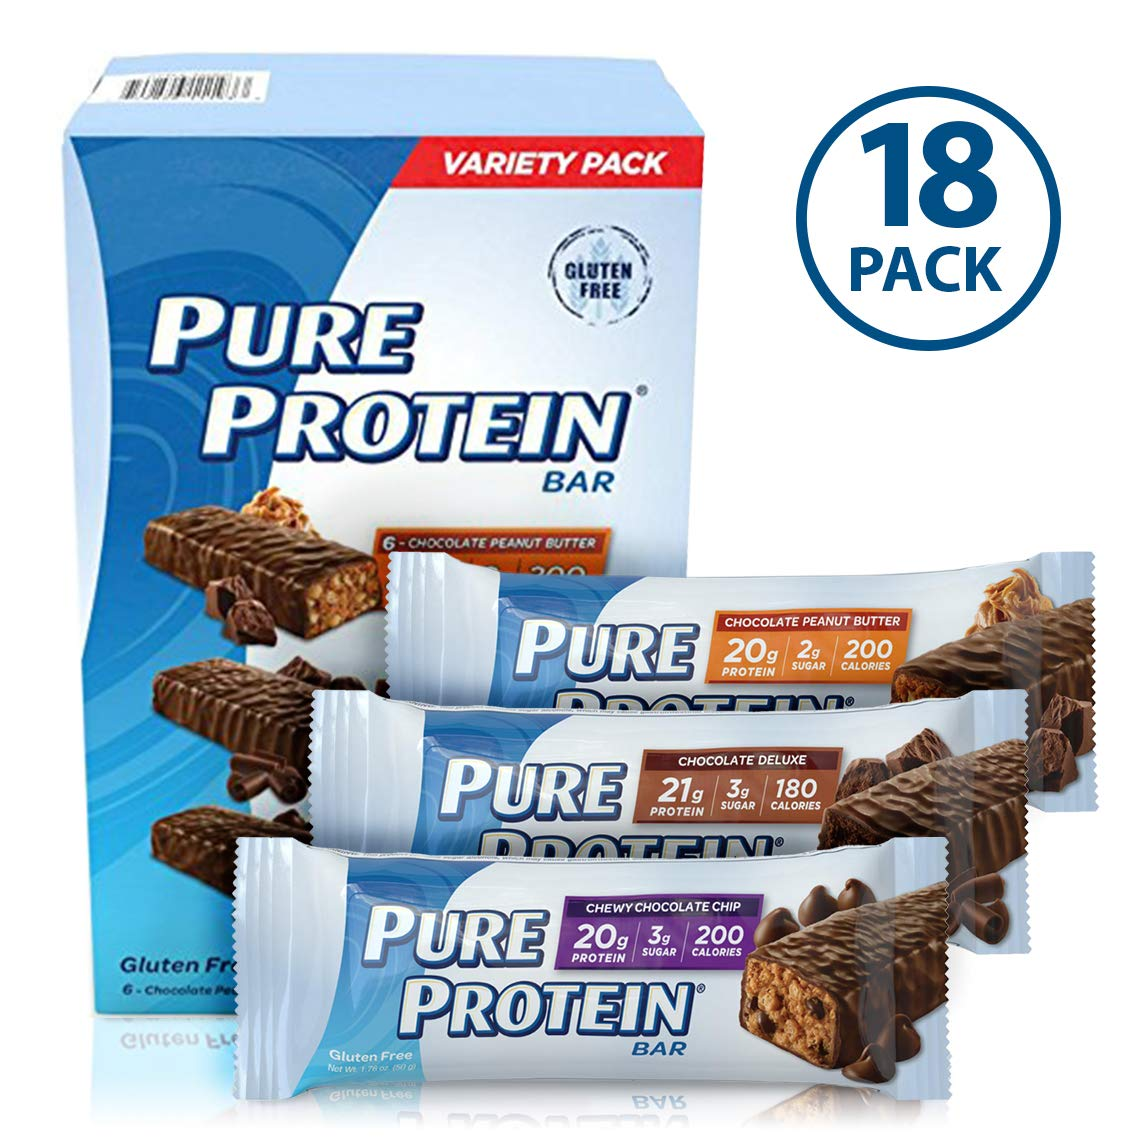 Pure Protein Bars, High Protein, Nutritious Snacks to Support Energy, Low Sugar, Gluten Free, Variety Pack, 1.76oz, 18 Pack by Pure Protein